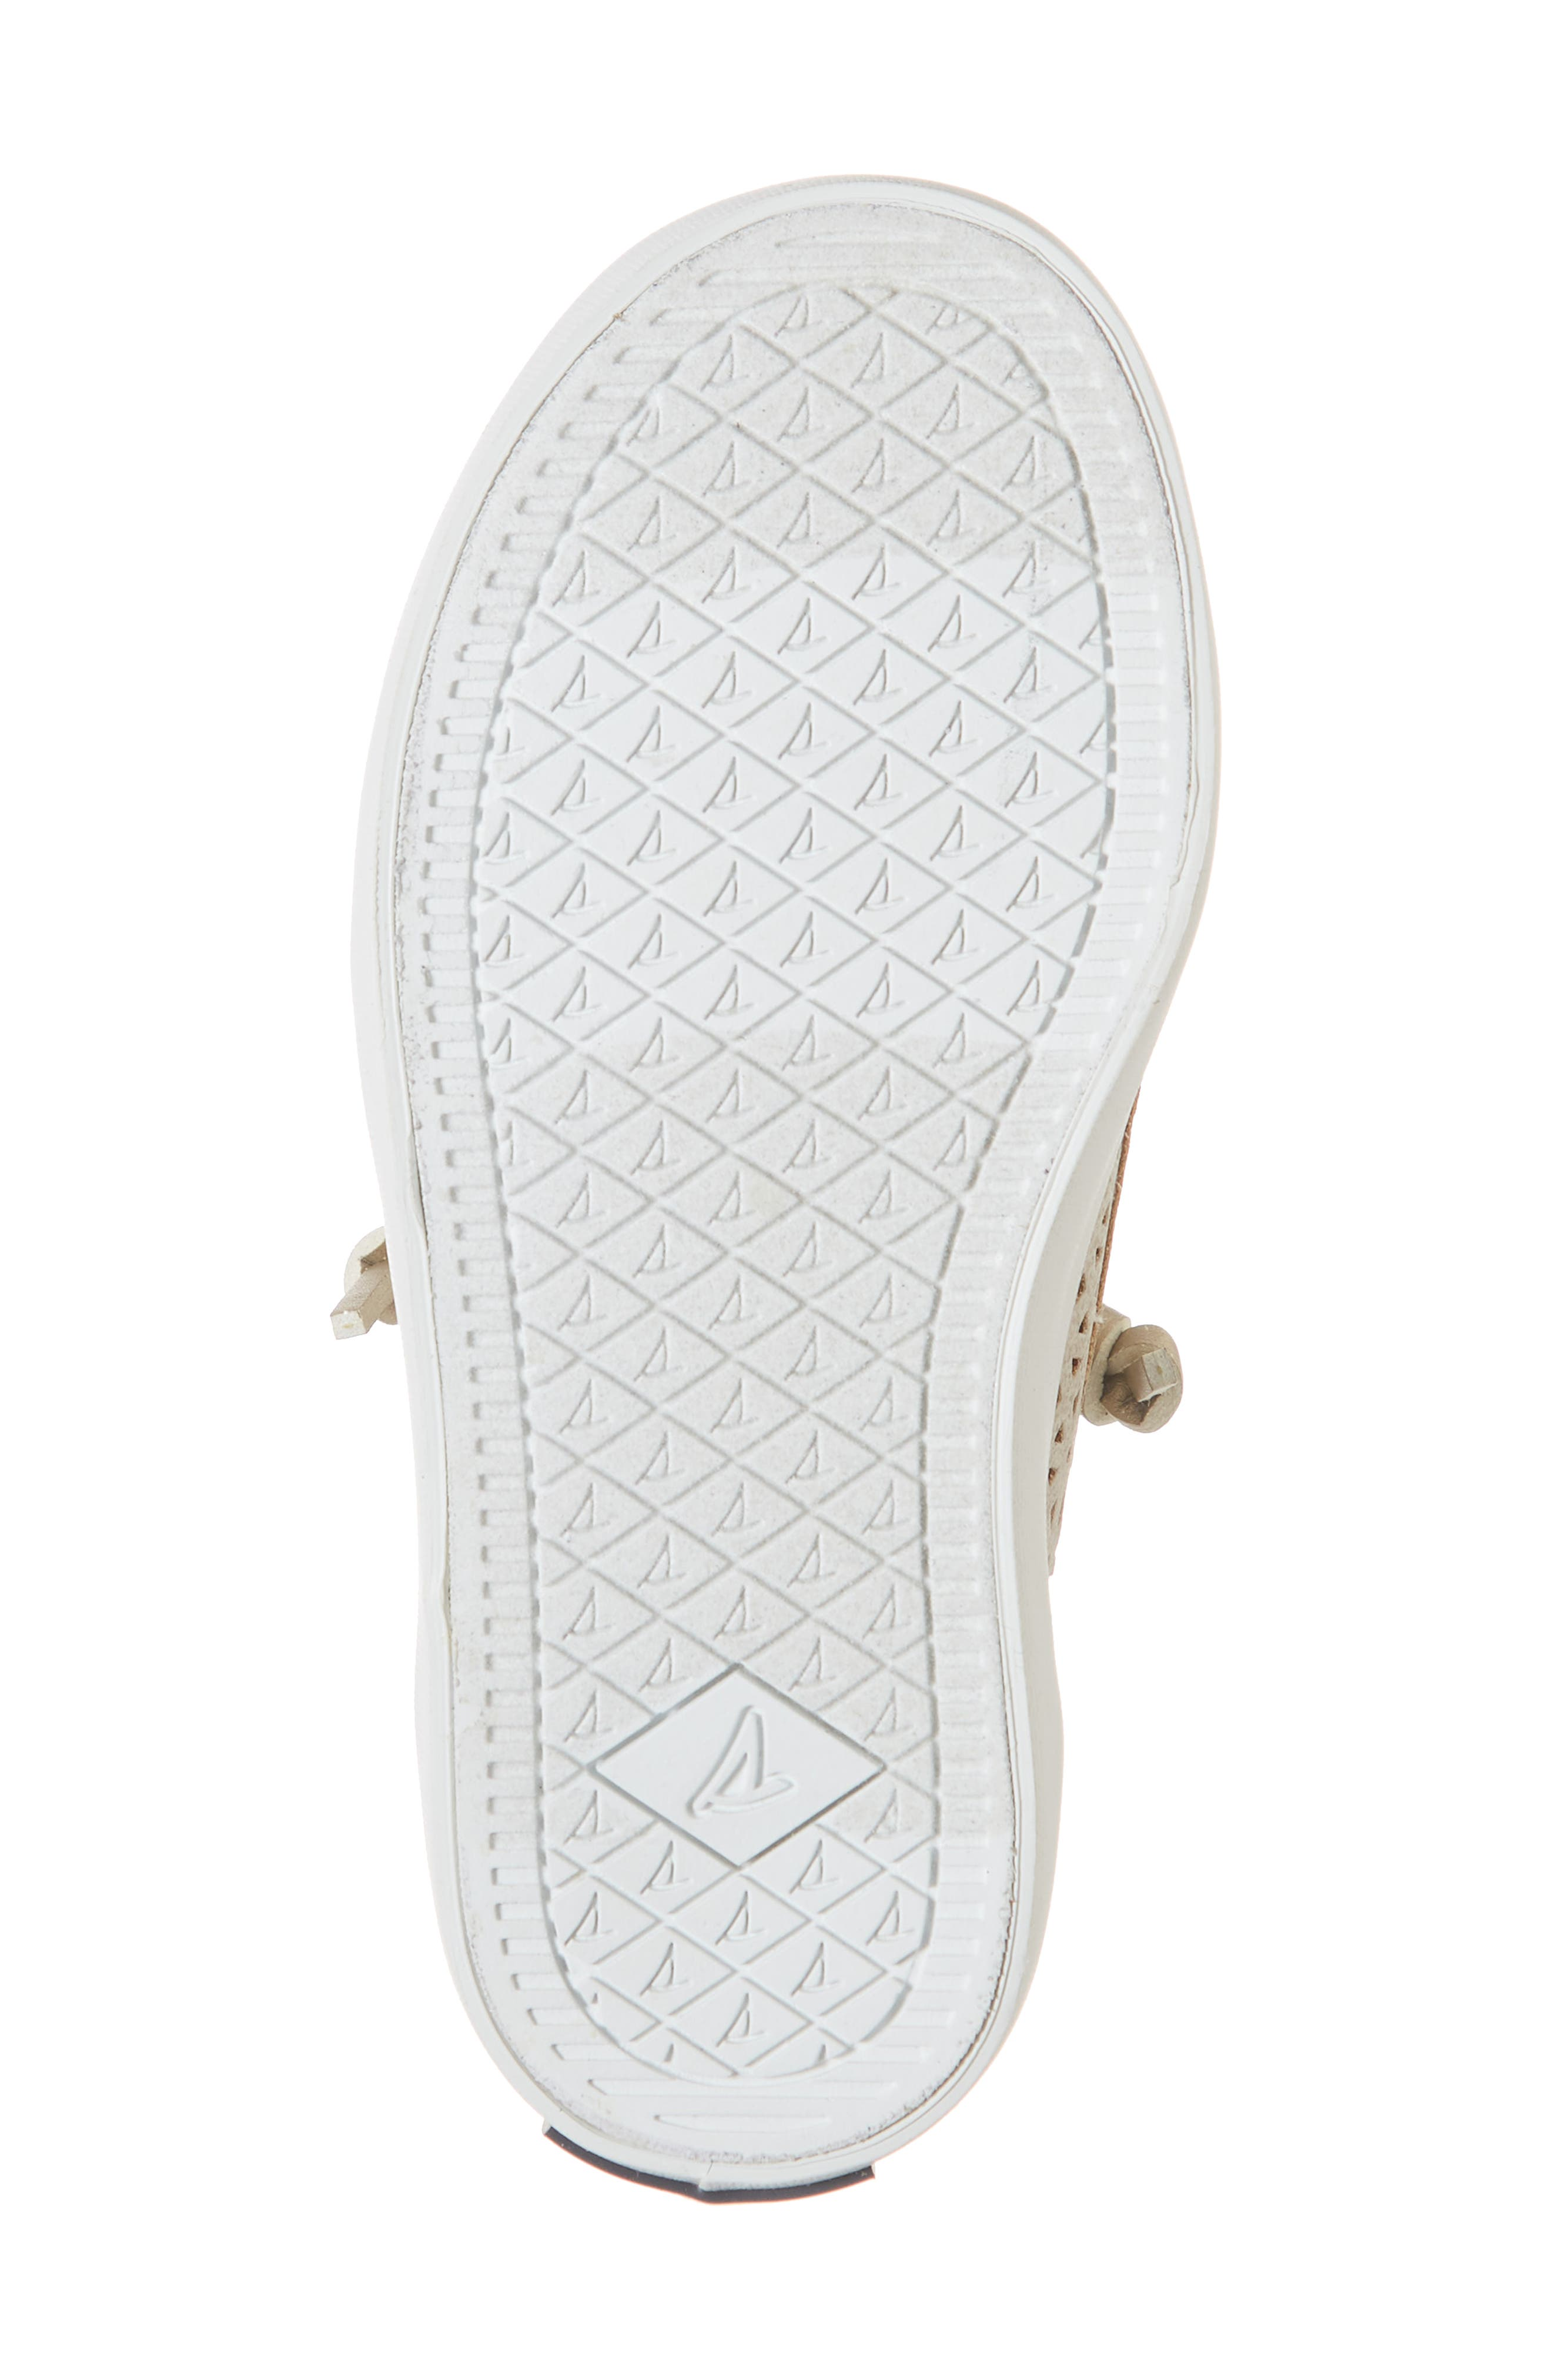 Sperry Crest Vibe Sneaker,                             Alternate thumbnail 6, color,                             CHAMPAGNE SYNTHETIC